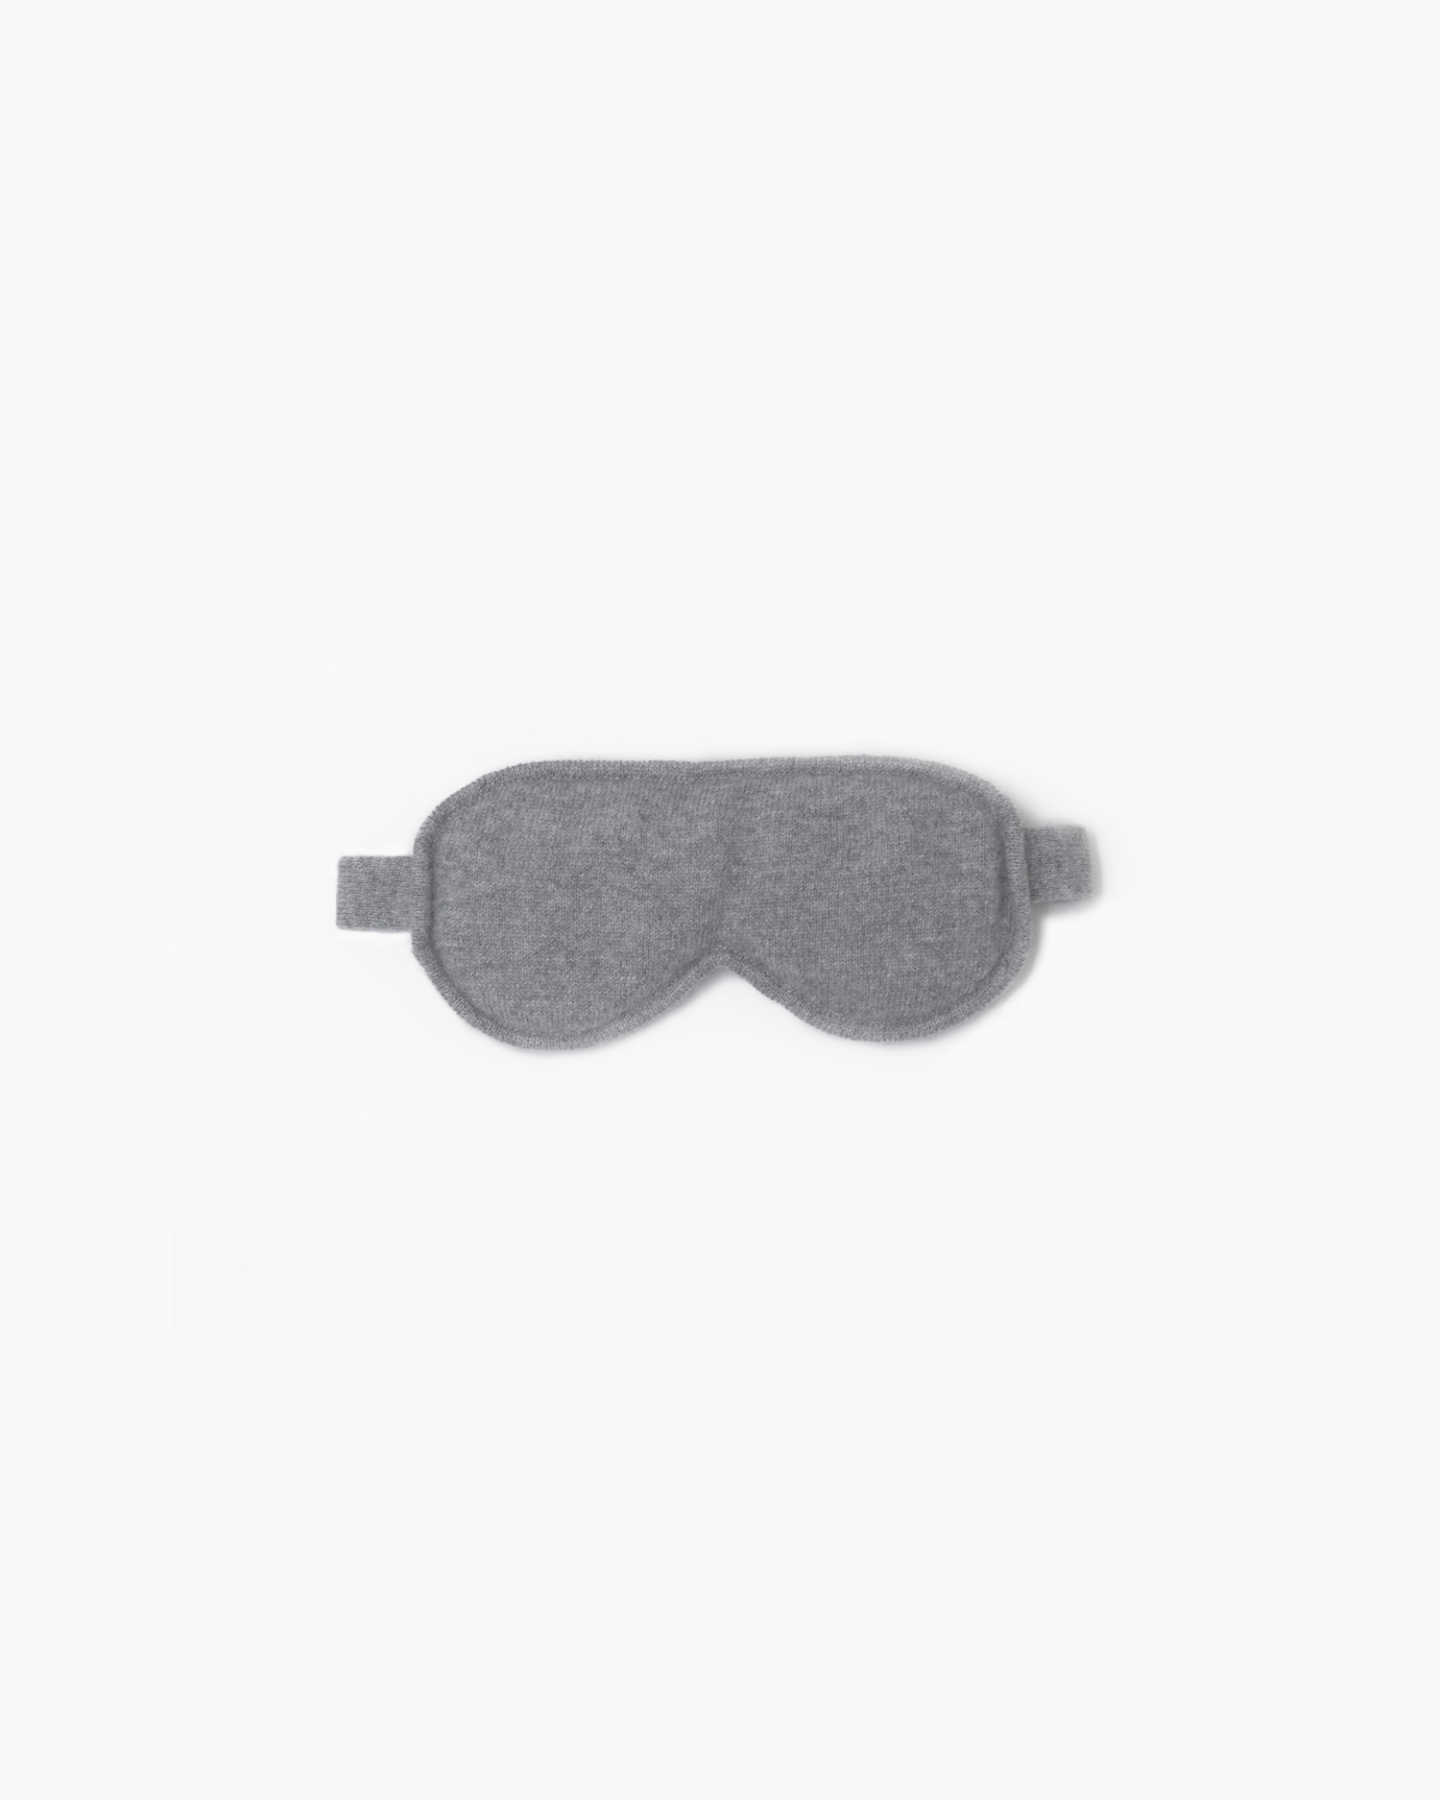 Mongolian Cashmere Sleep Mask - Heather Grey - 0 - Thumbnail